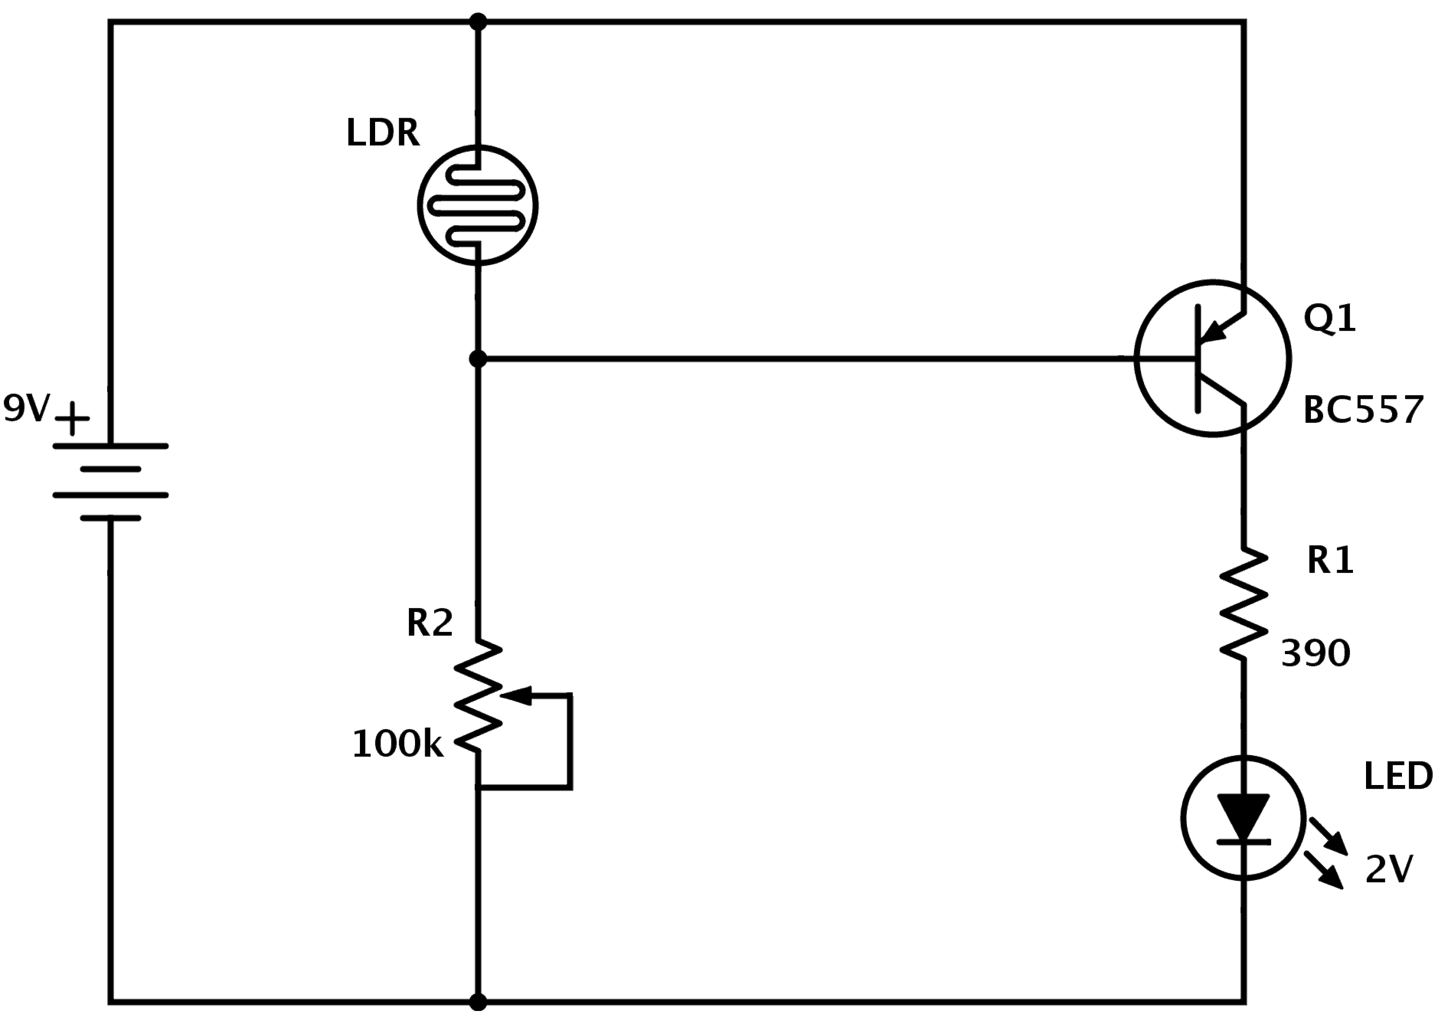 Ldr Circuit Diagram Build Electronic Circuits 5 Best Images Of Photocell Wiring With Pnp Transistor Dark Detector